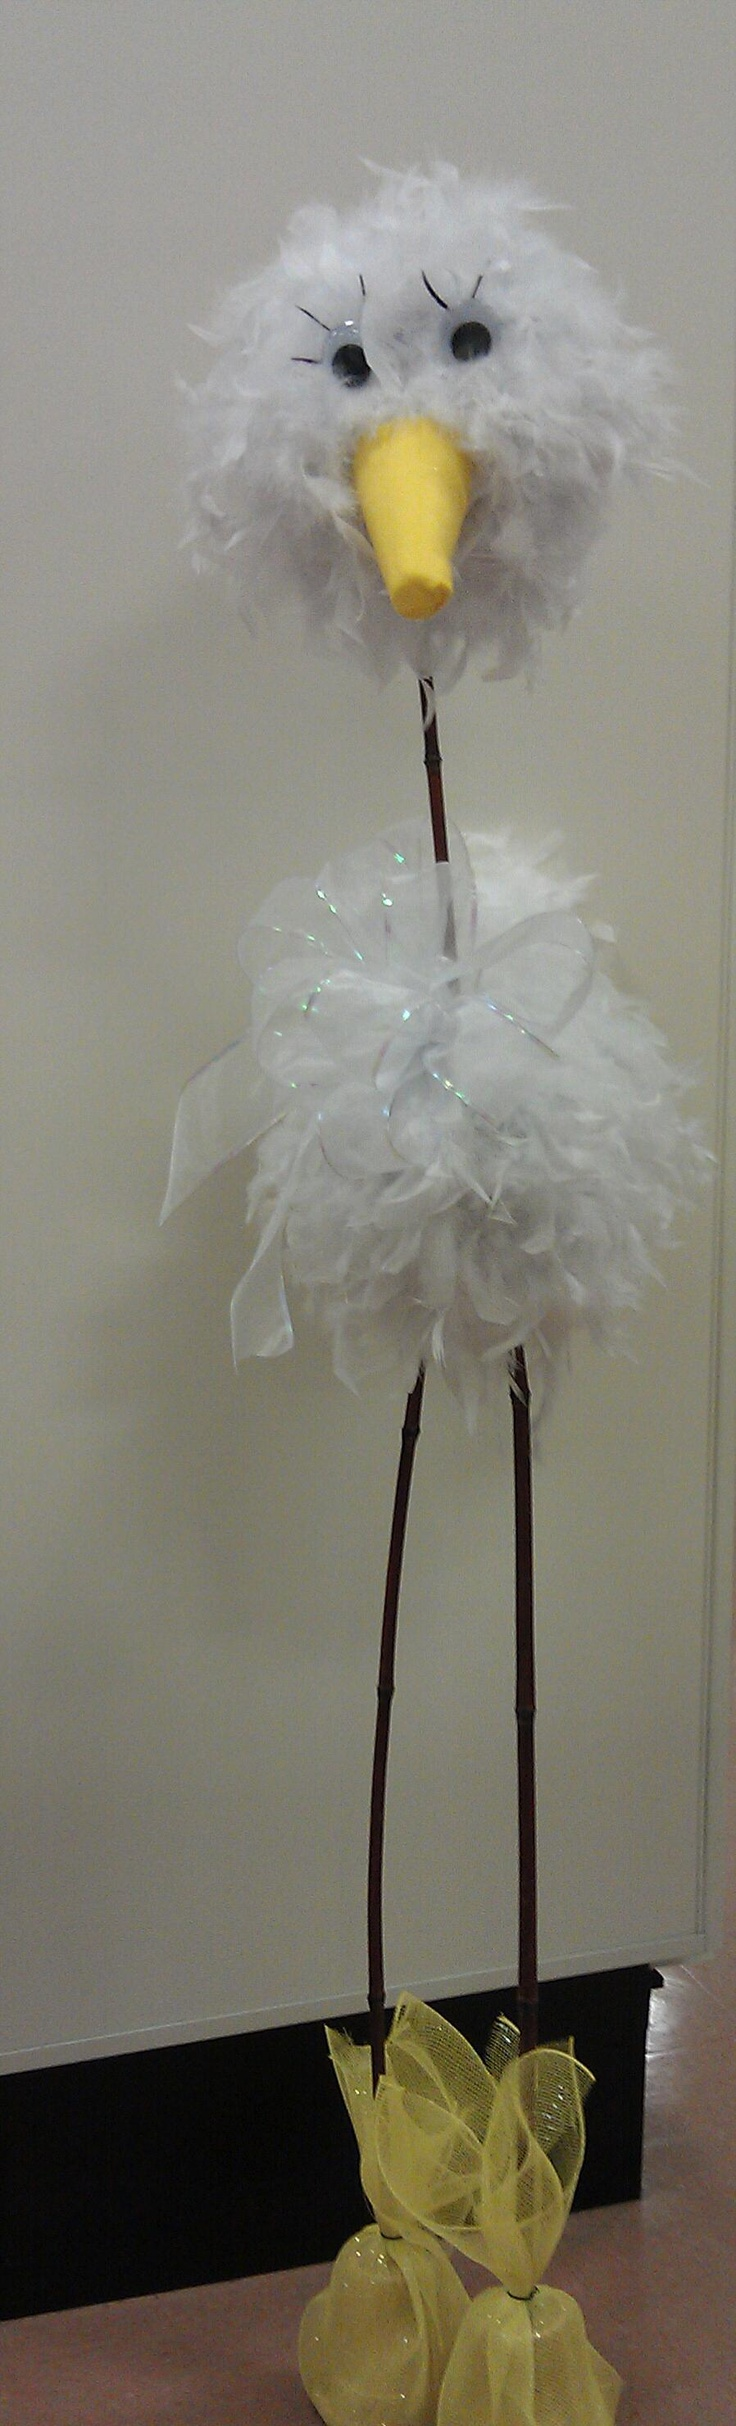 Feather stork custom for Baby Shower ... Over 5 feet tall !! Michaels arts n crafts #1035 NY